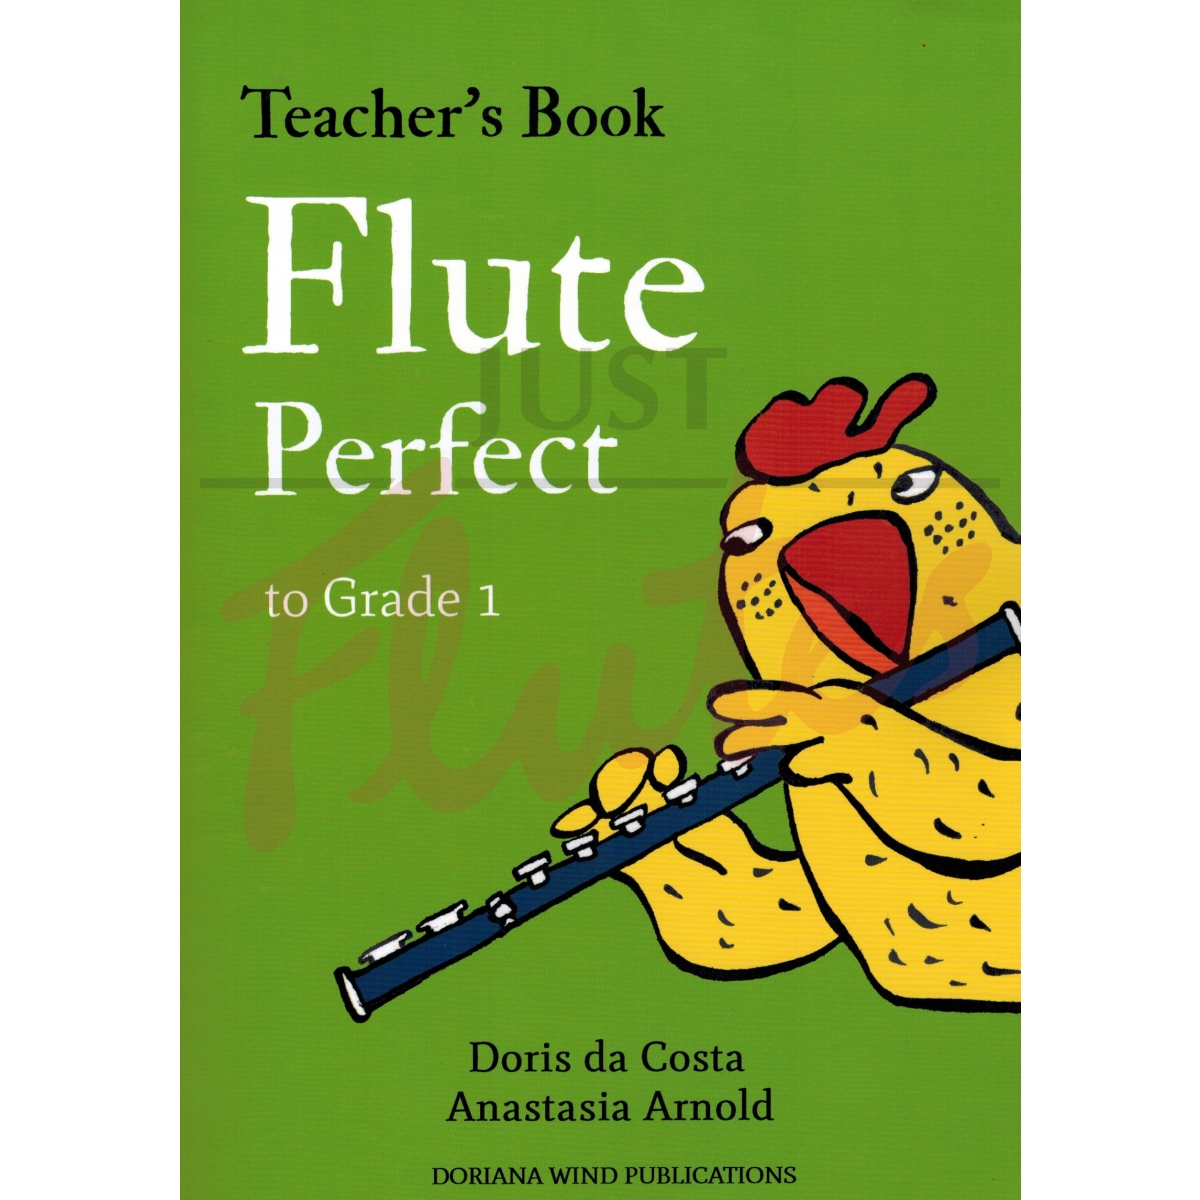 Flute Perfect Teacher's Book- Cover